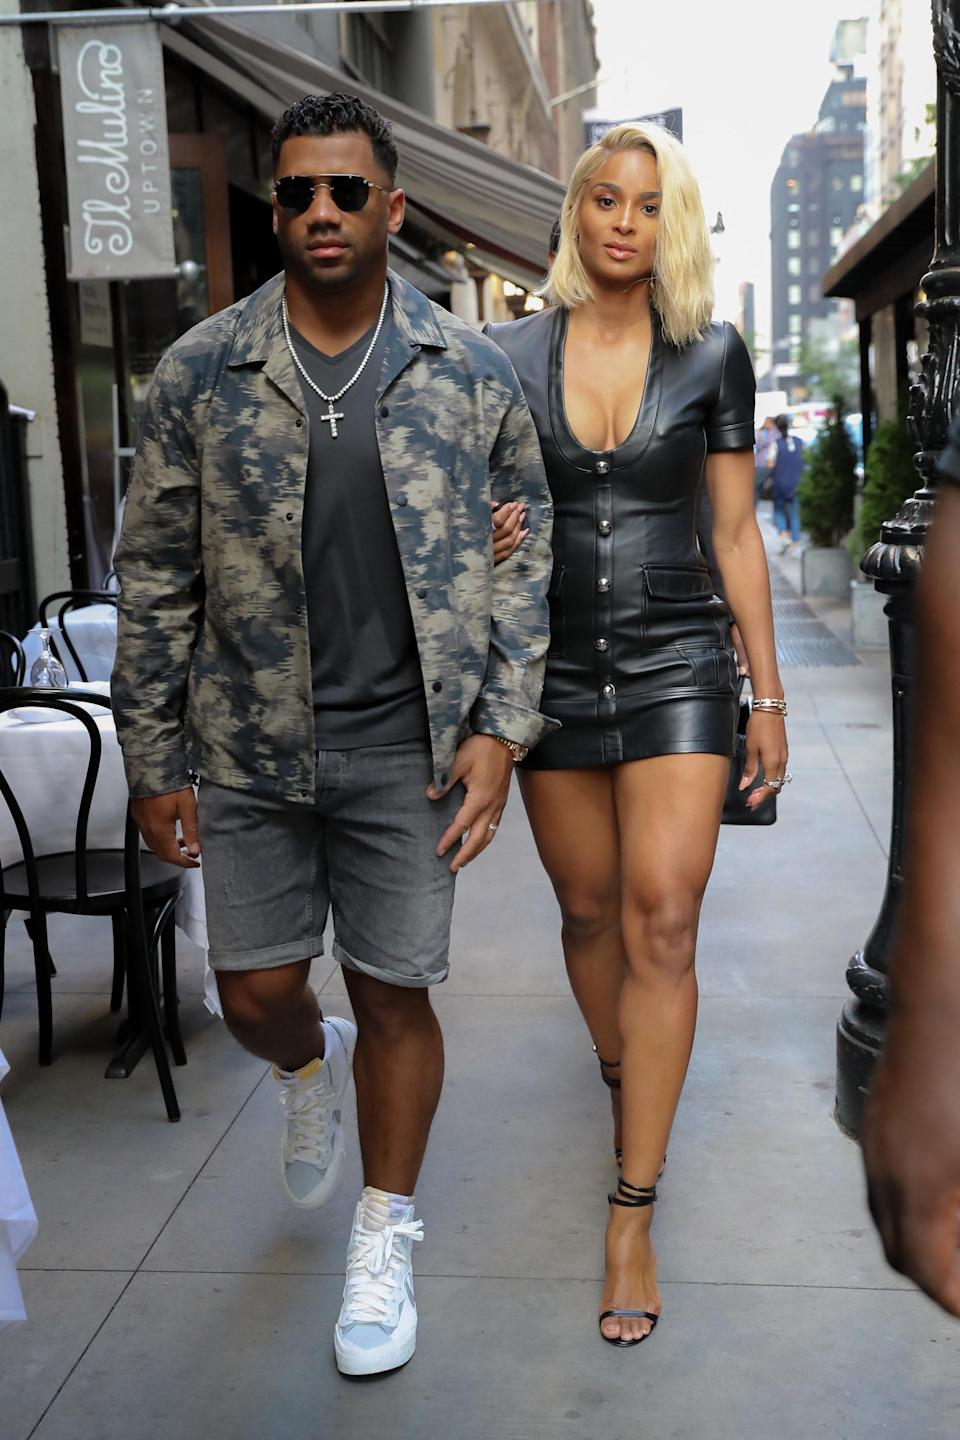 Ciara and Russell Wilson are seen arriving at Philippe Chow for dinner on June 30, 2021, in New York City, New York